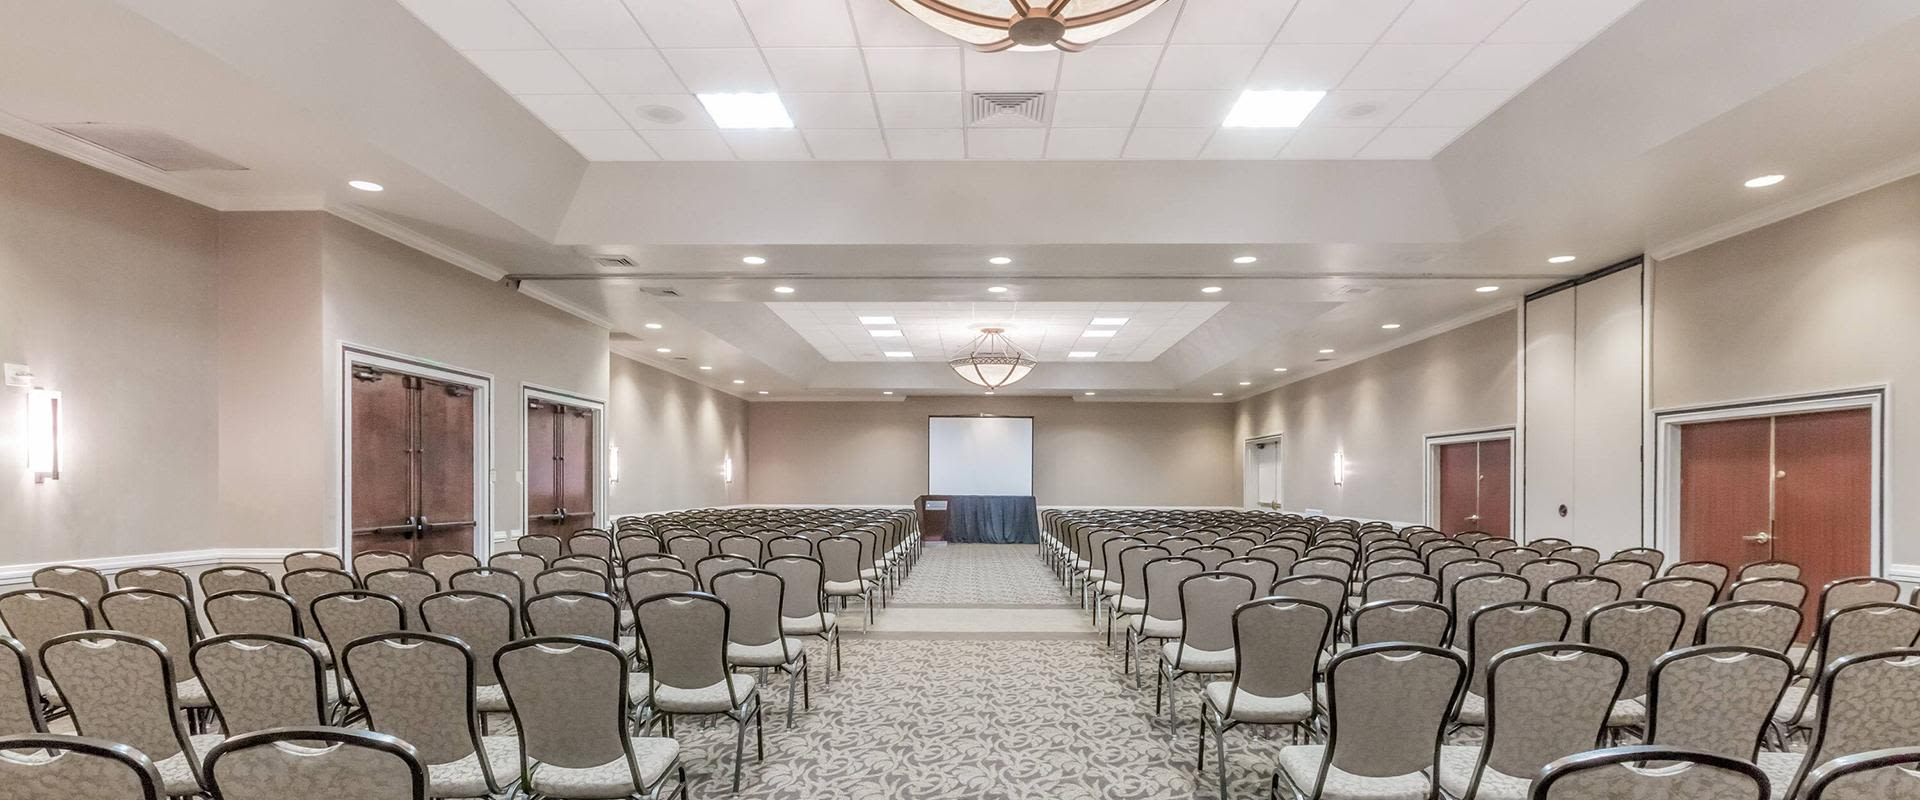 Large conference room with rows of chairs